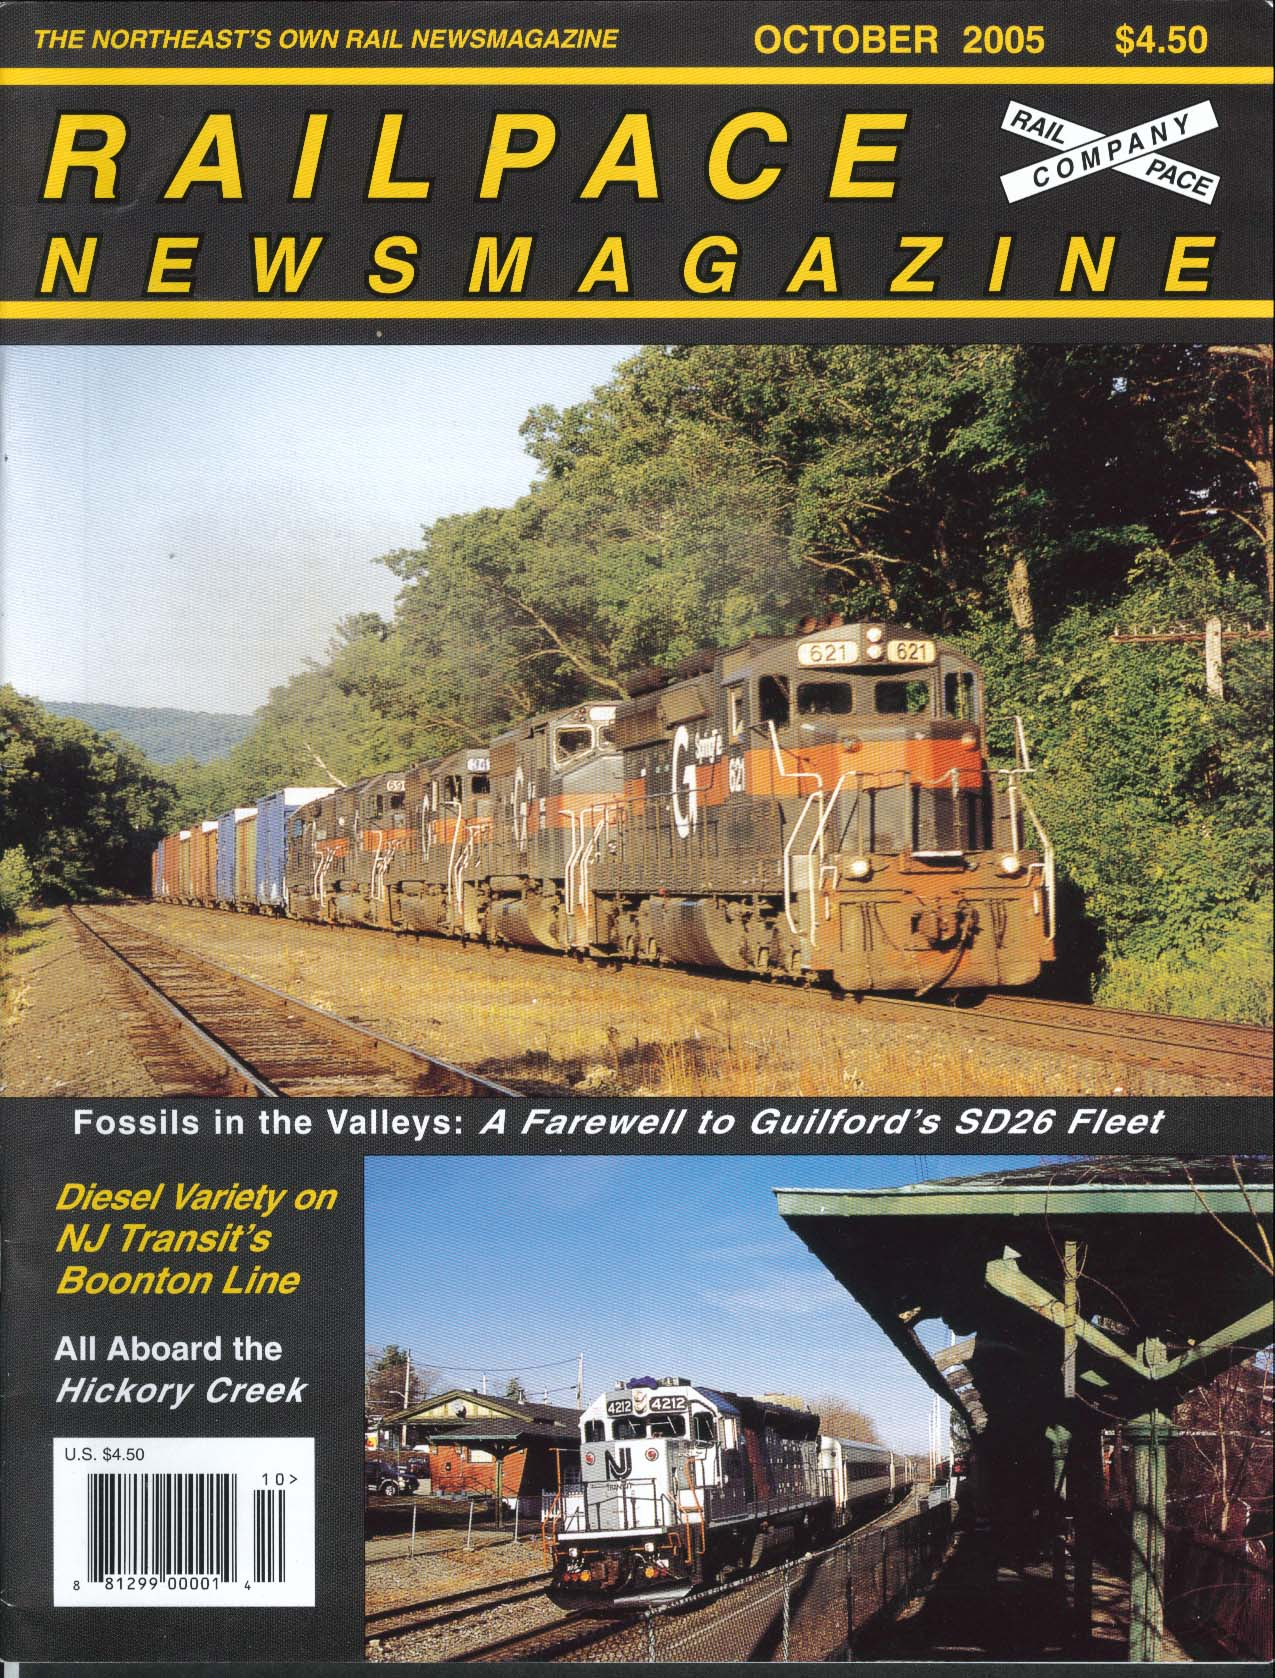 RAILPACE Guilford SD26 Diesel NJ Transit Boonton Line Hickory Creek 10 2005